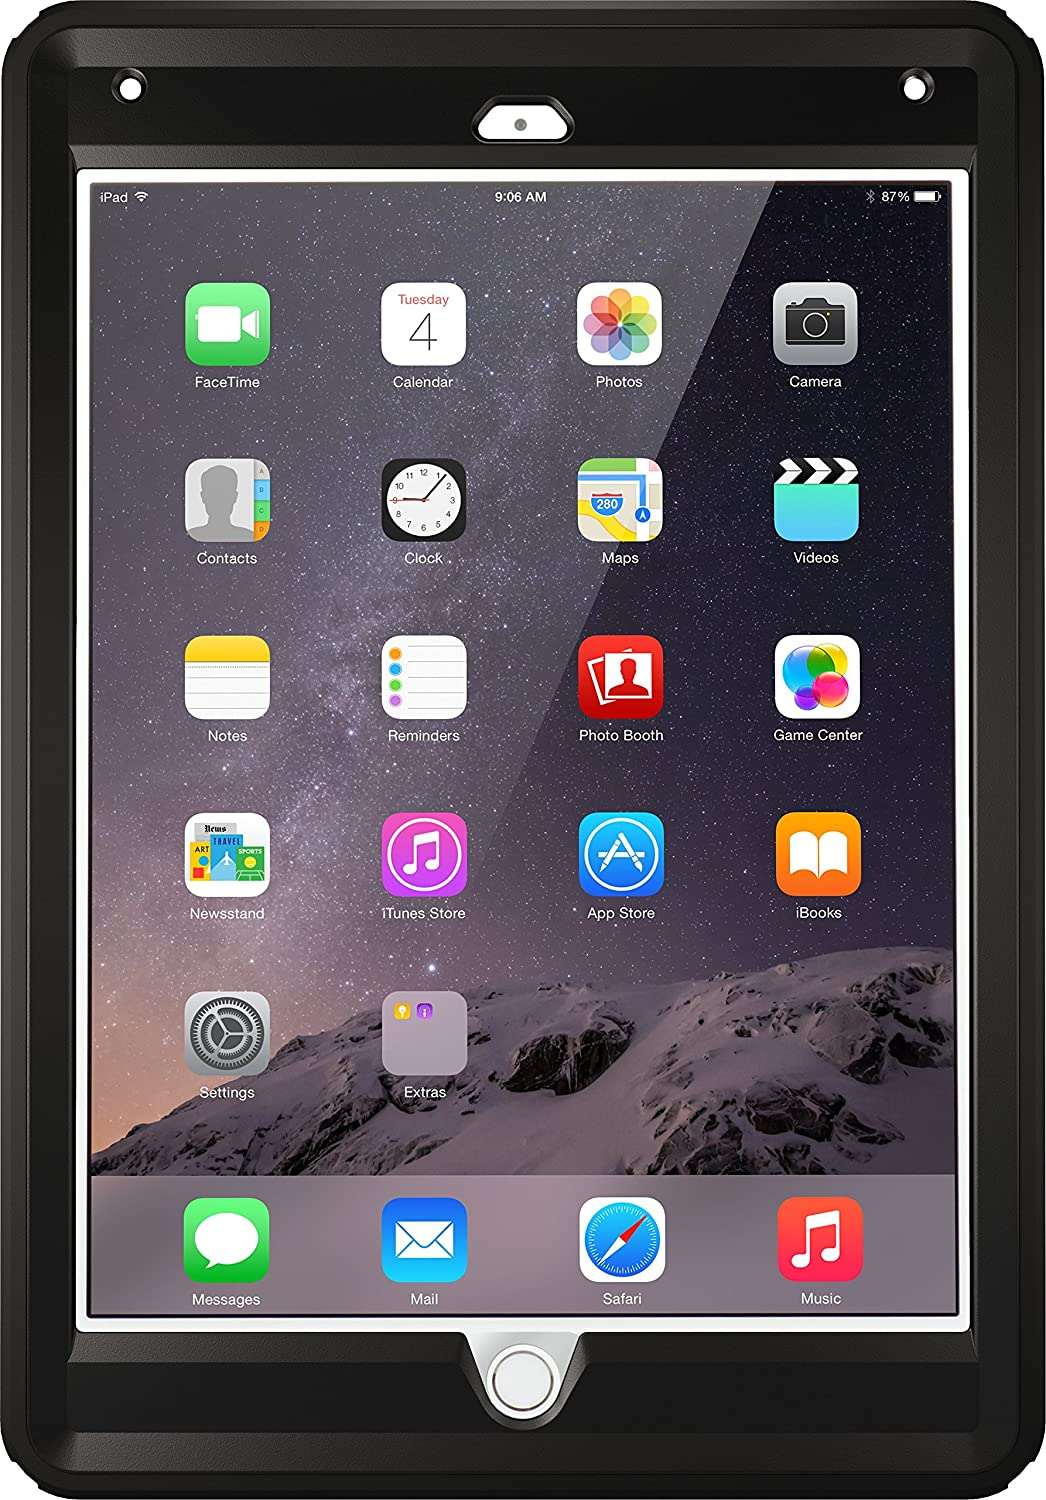 Otterbox Defender Series Case For Ipad Air 2 Black Buy Otterbox Defender Series Case For Ipad Air 2 Black Online At Low Price In India Amazon In